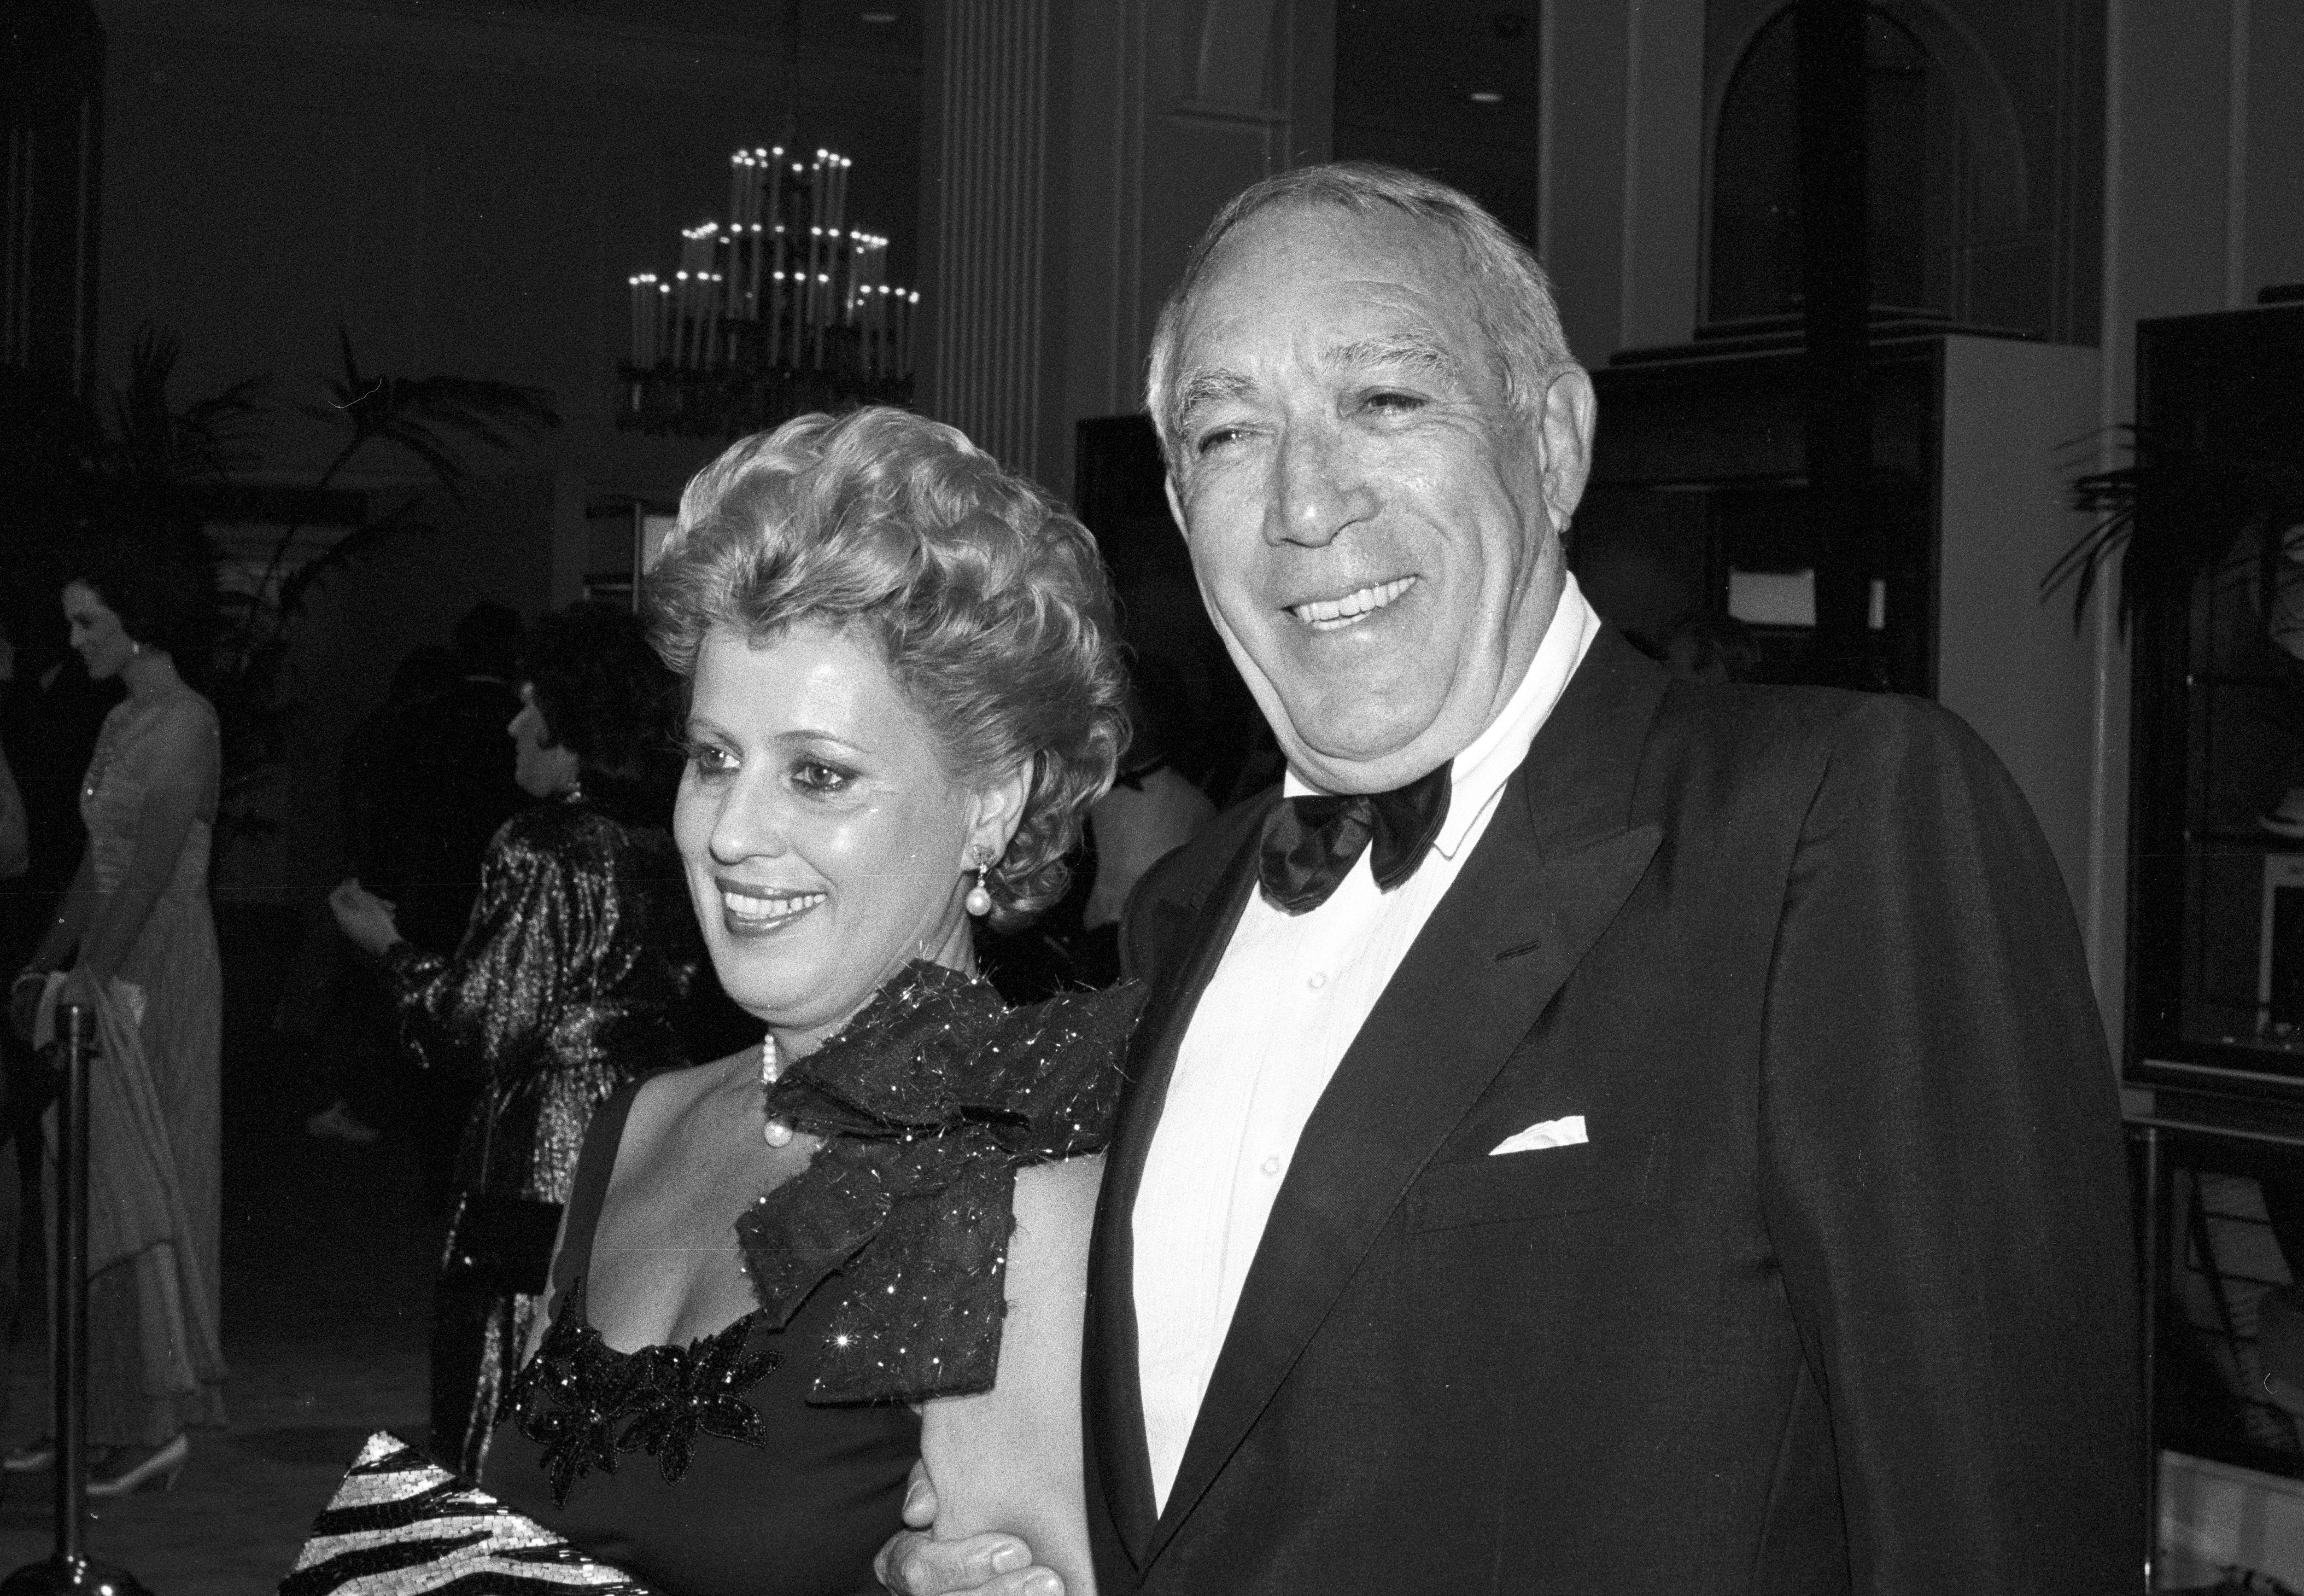 Actor Anthony Quinn, Golden Globe winner and Cecil B.deMille recipient